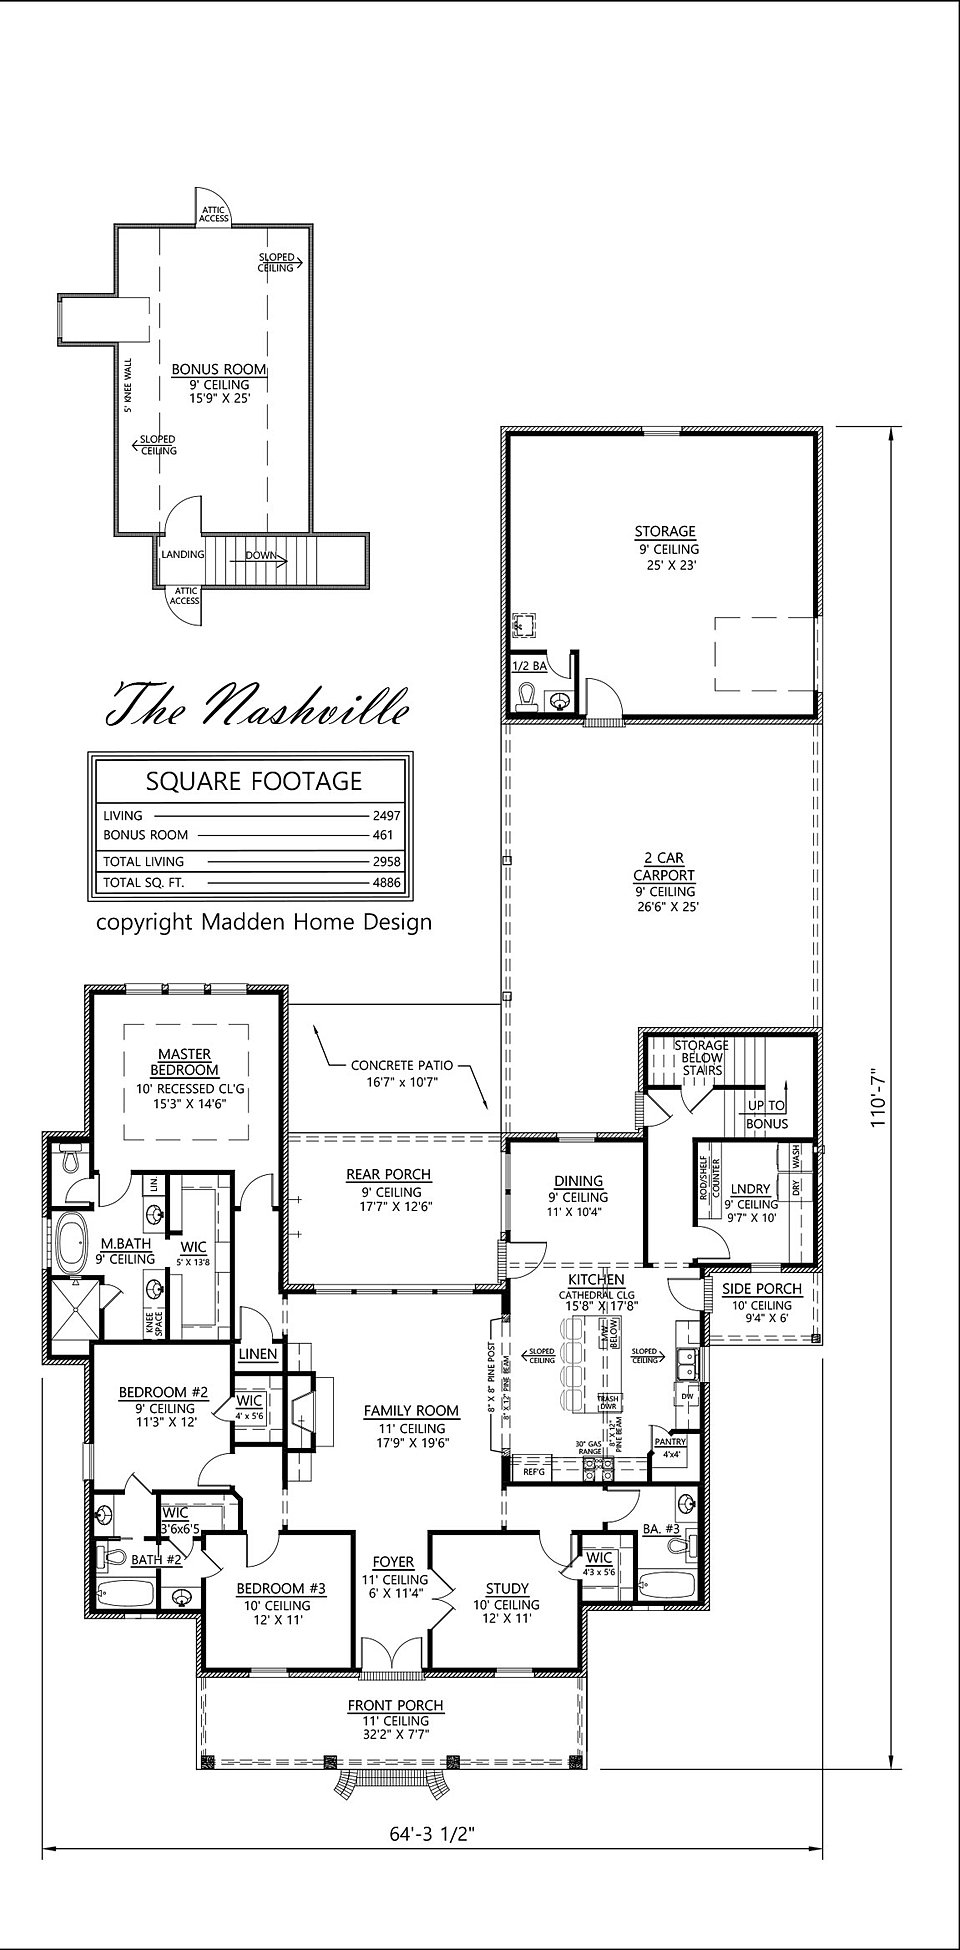 Madden Home Design The Nashville